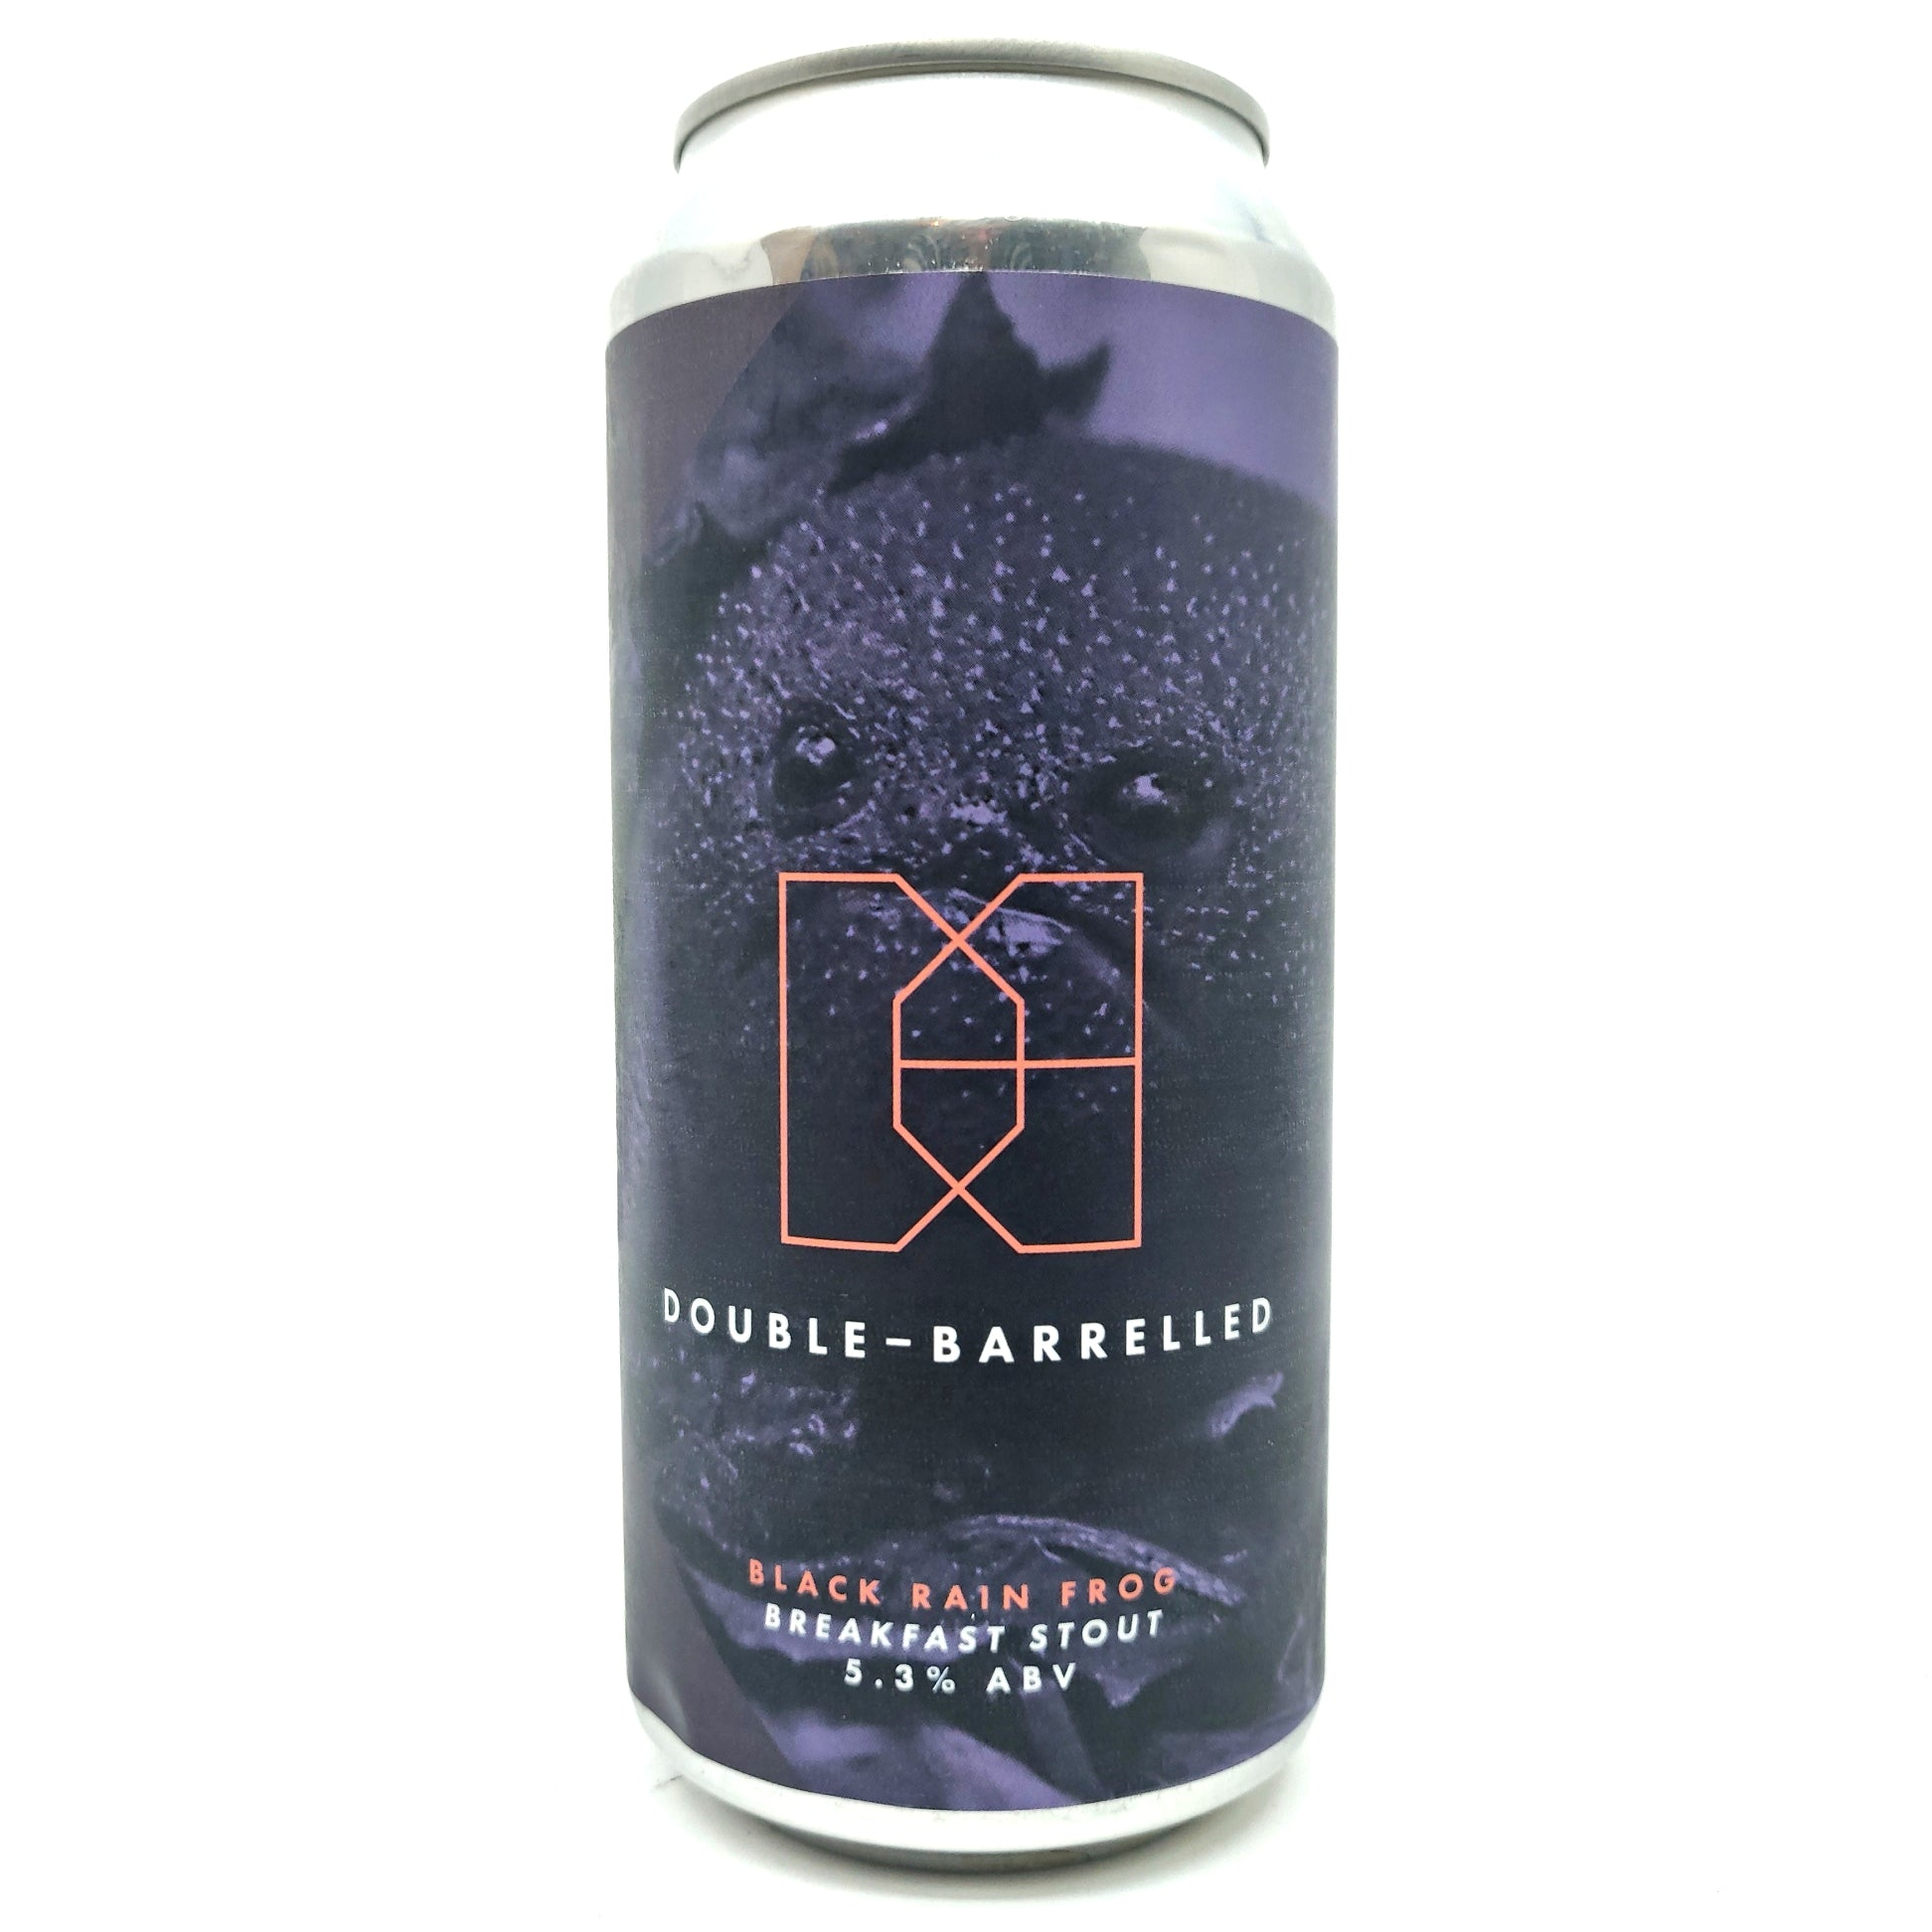 Double Barrelled Black Rain Frog Breakfast Stout 5.3% (440ml can)-Hop Burns & Black